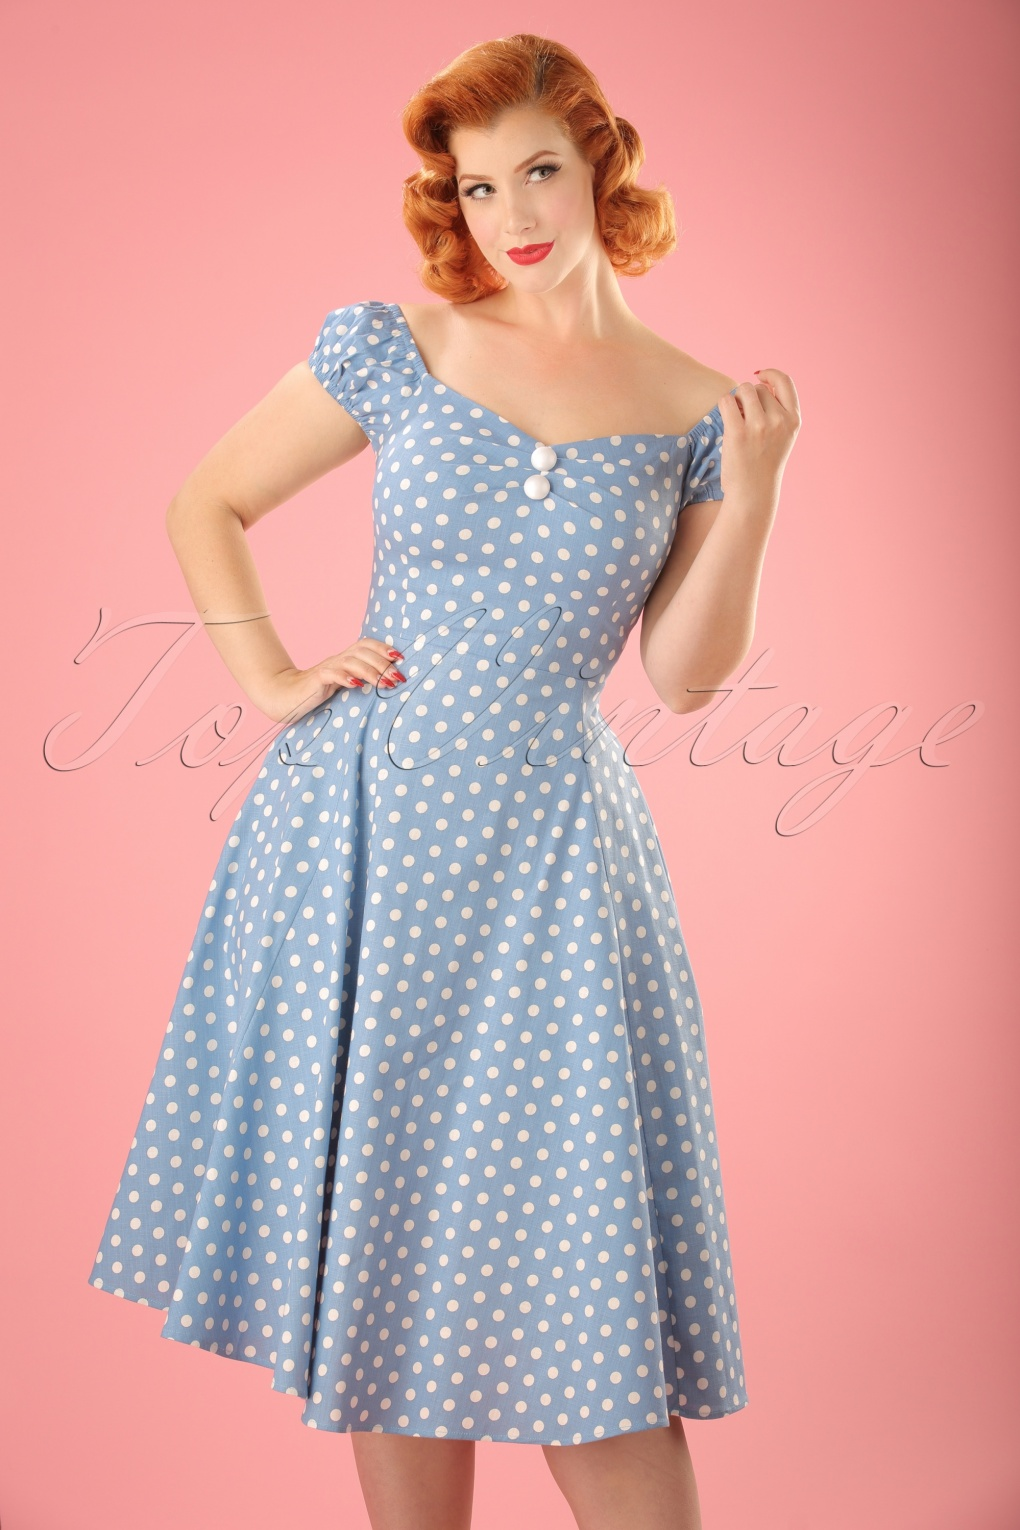 1940s Pinup Dresses for Sale 50s Dolores Polkadot Doll Swing Dress in Dusky Blue and White £31.33 AT vintagedancer.com